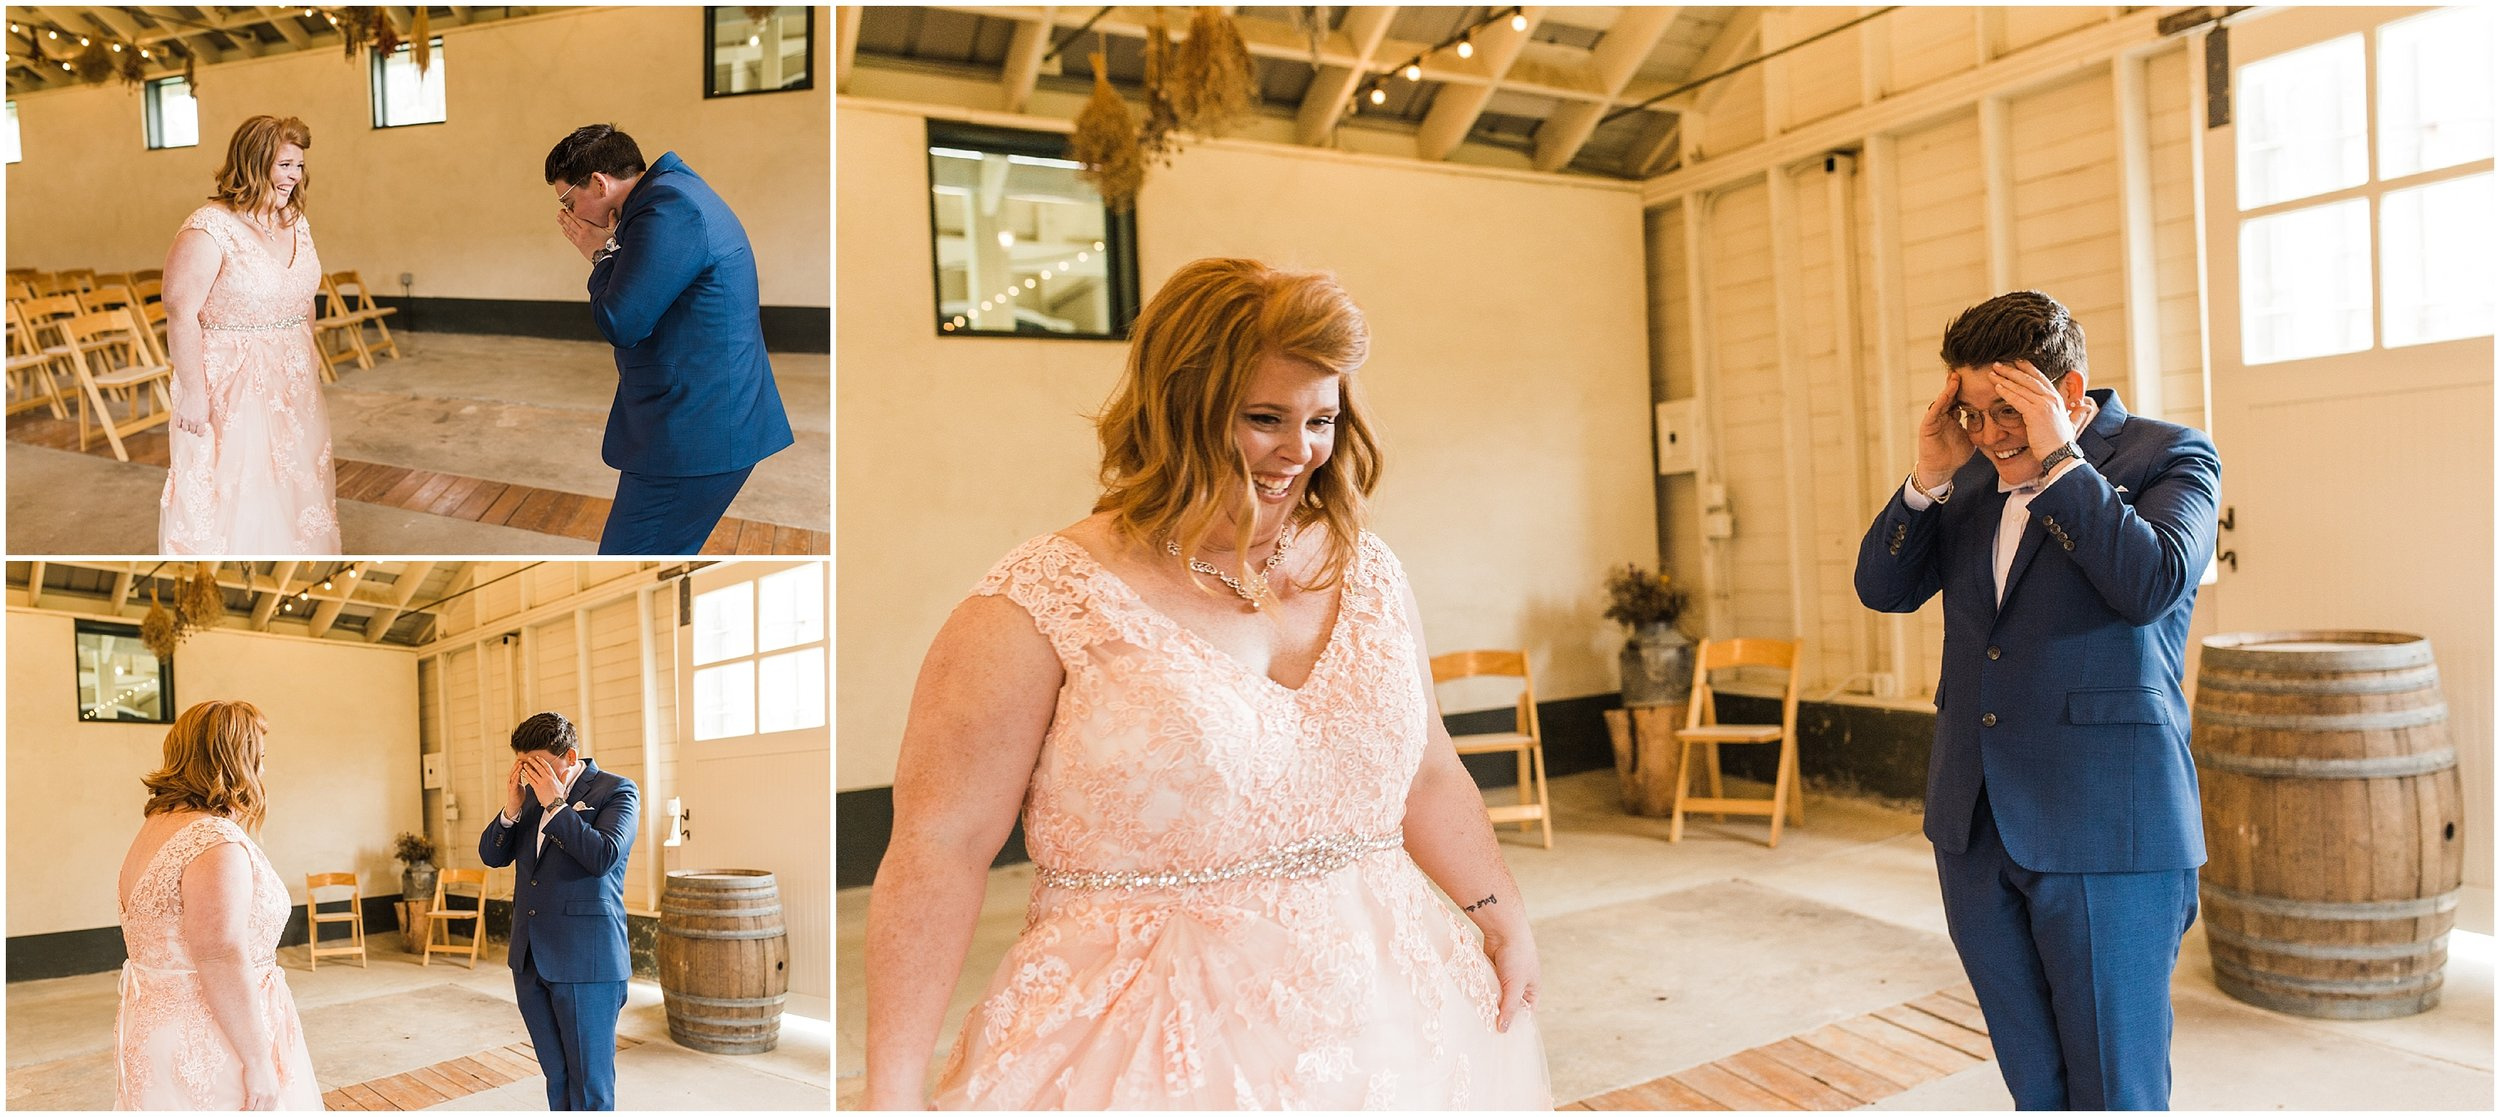 Heather+Rah Wedding Highlights-53.jpg